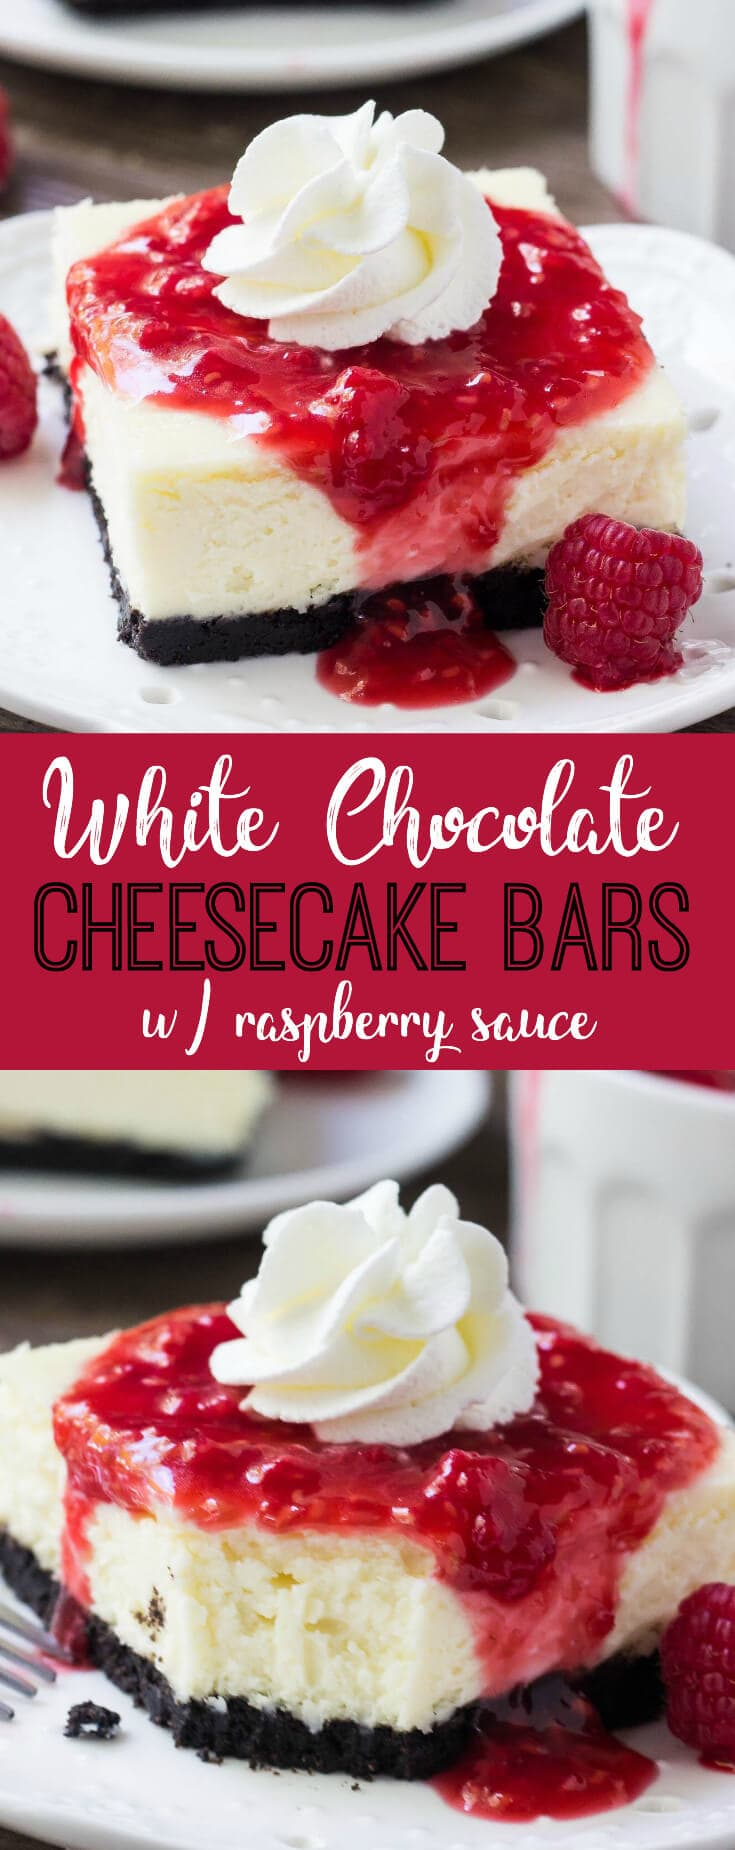 White Chocolate Cheesecake Bars with Raspberry Sauce Oh Sweet Basil